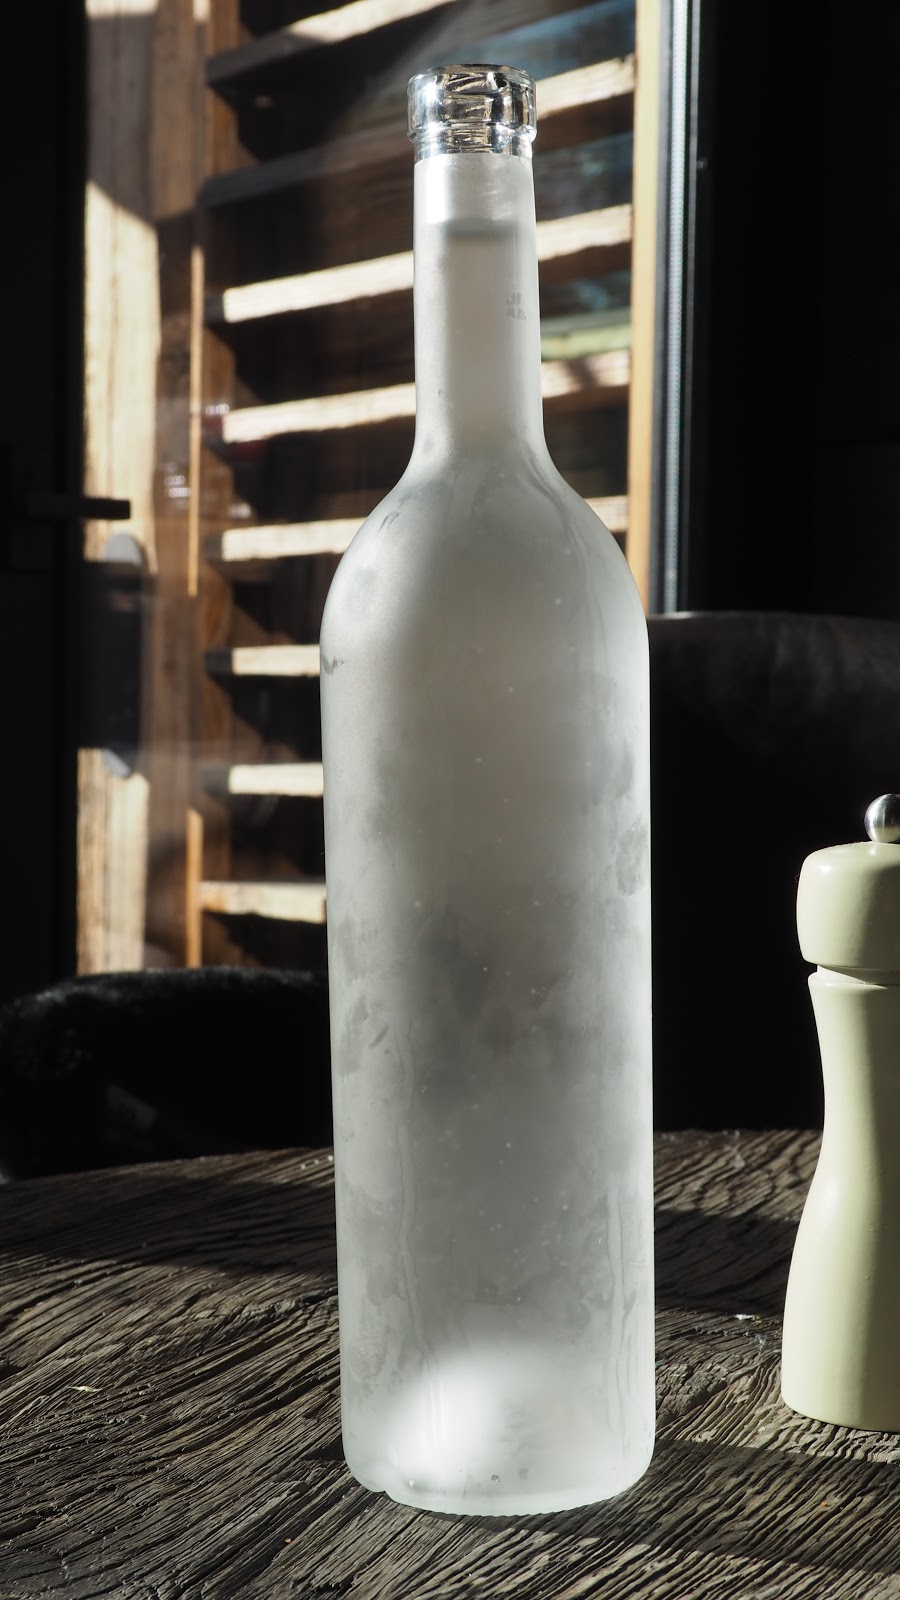 Glass bottle of water, La Baraque interior in Val d'isere, France